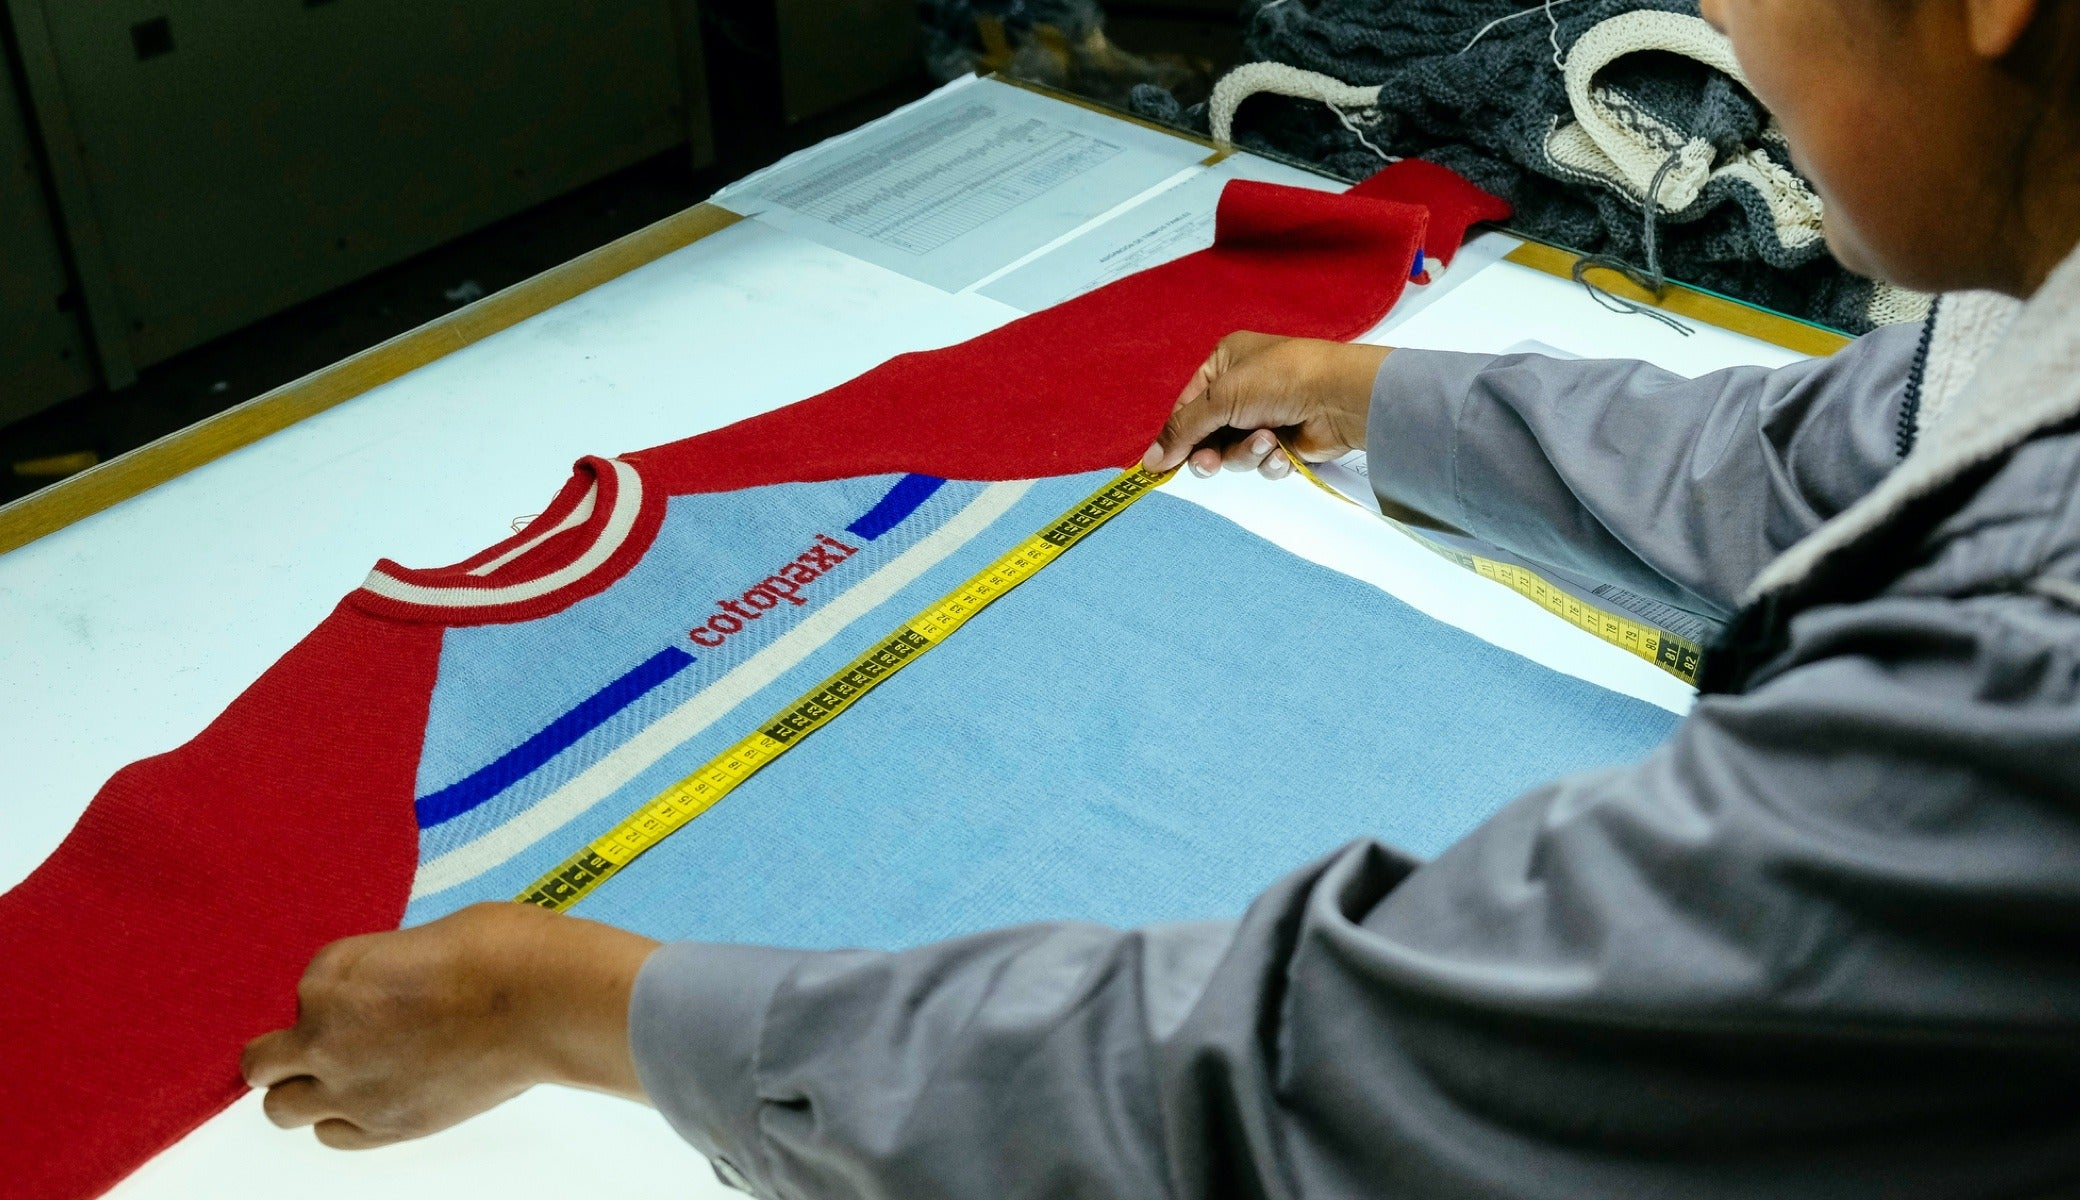 An employee conducts quality assurance tests on a Cotopaxi Libre sweater.